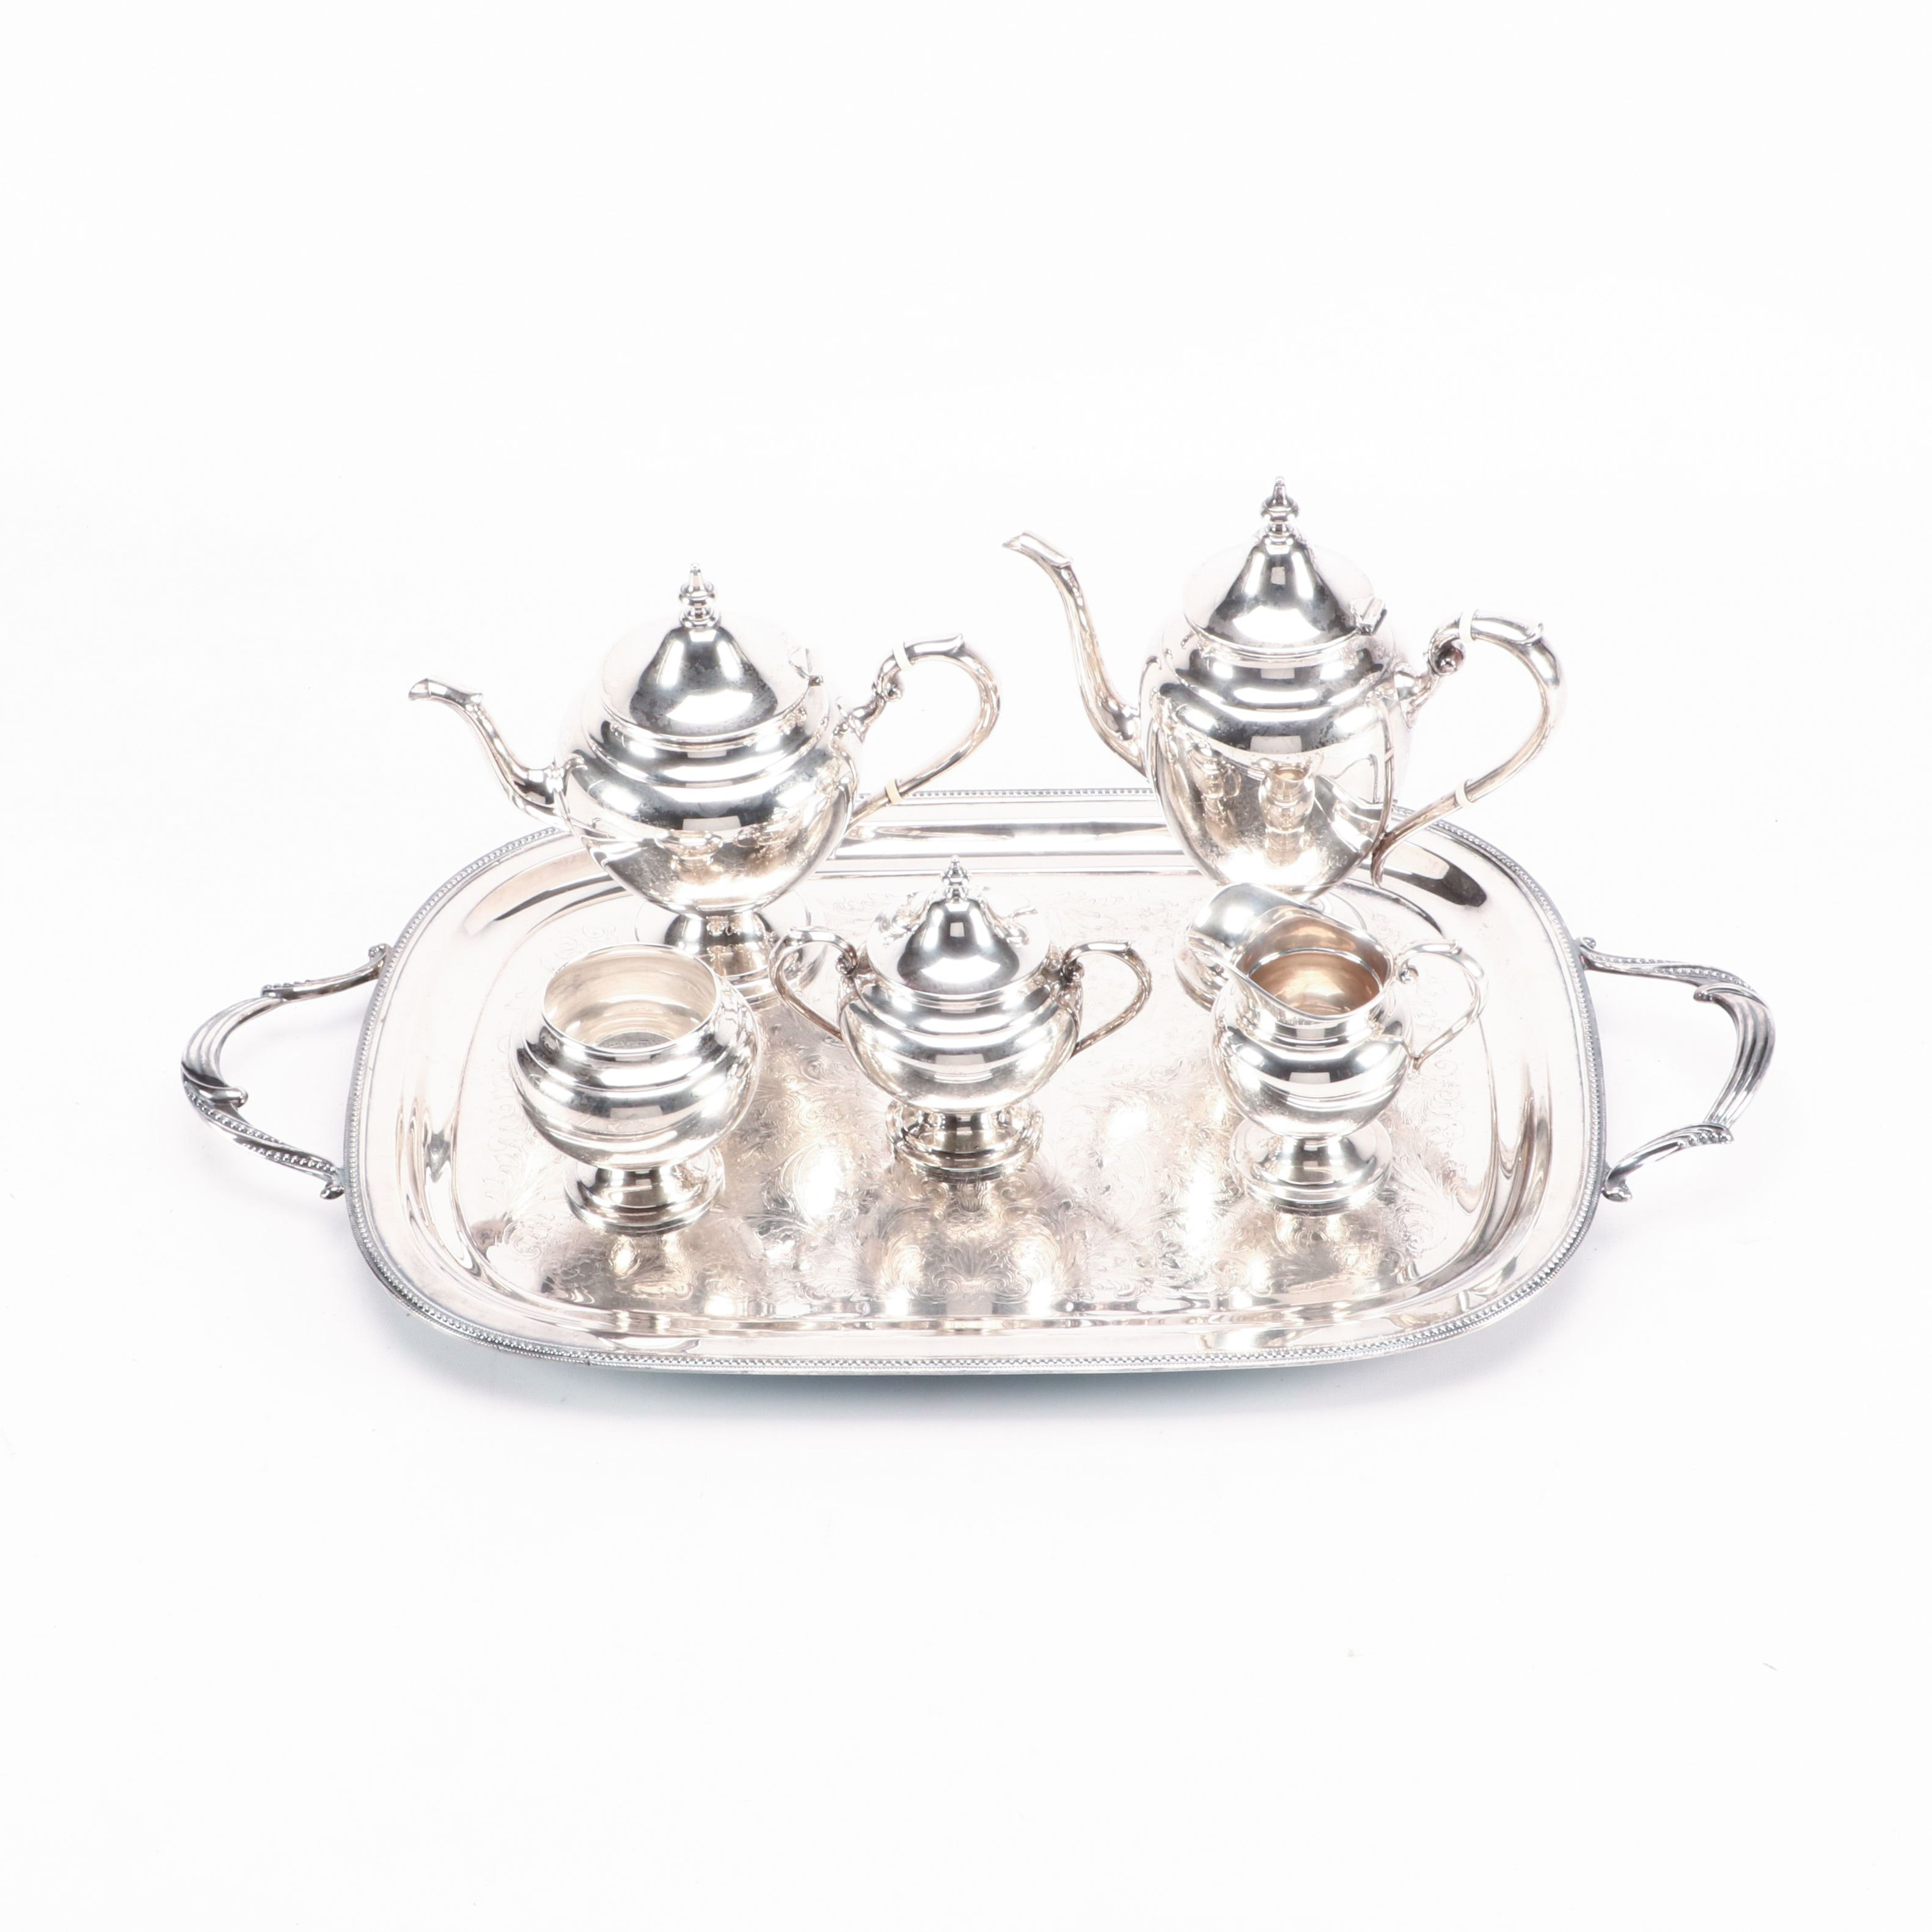 "Gorham ""Puritan"" Sterling Silver Tea and Coffee Service With Silver Plate Tray"